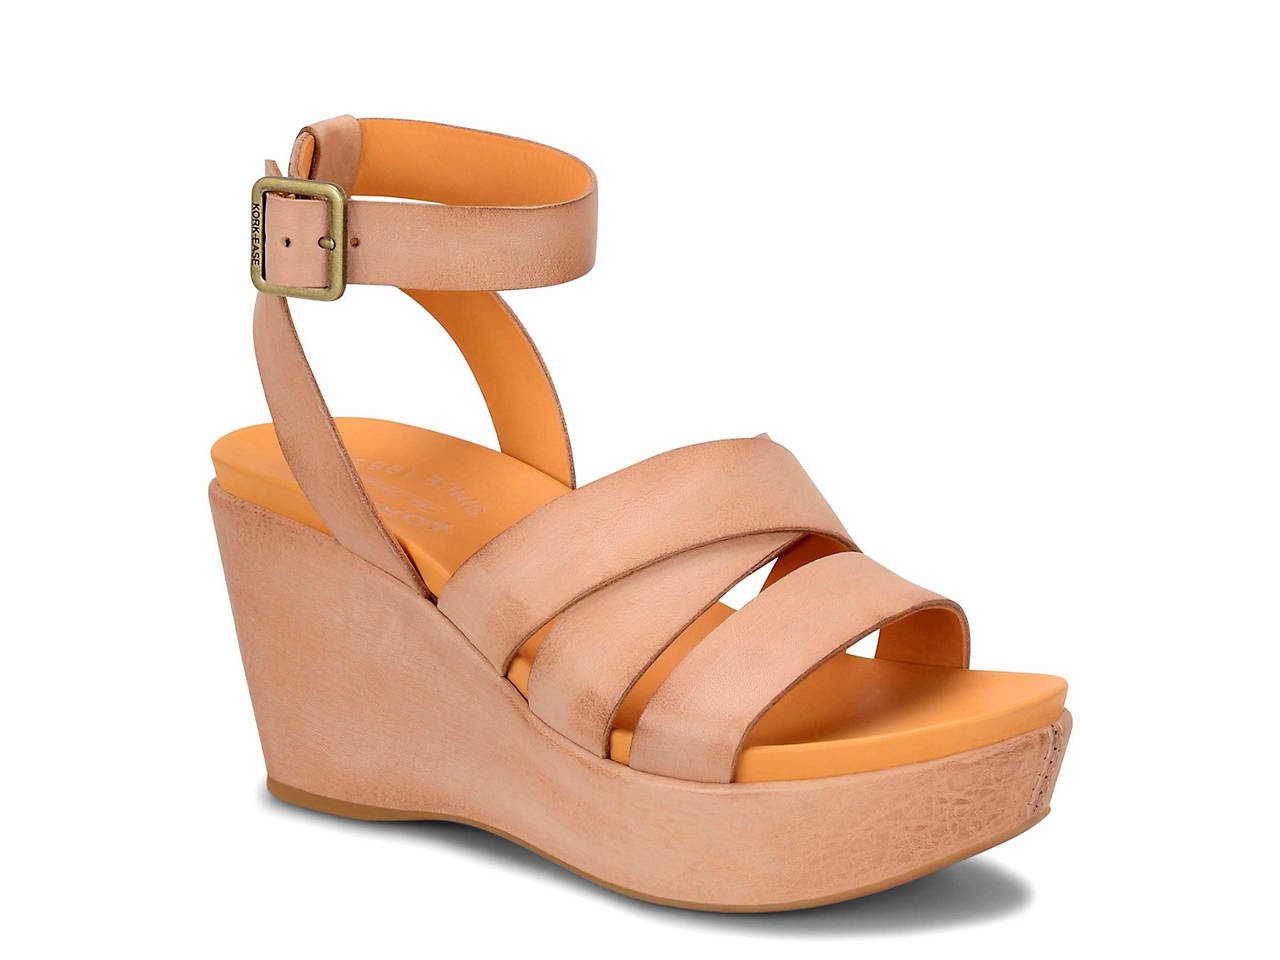 0ba763fa19 Kork-Ease Amber Wedge Sandal Women's Shoes | DSW